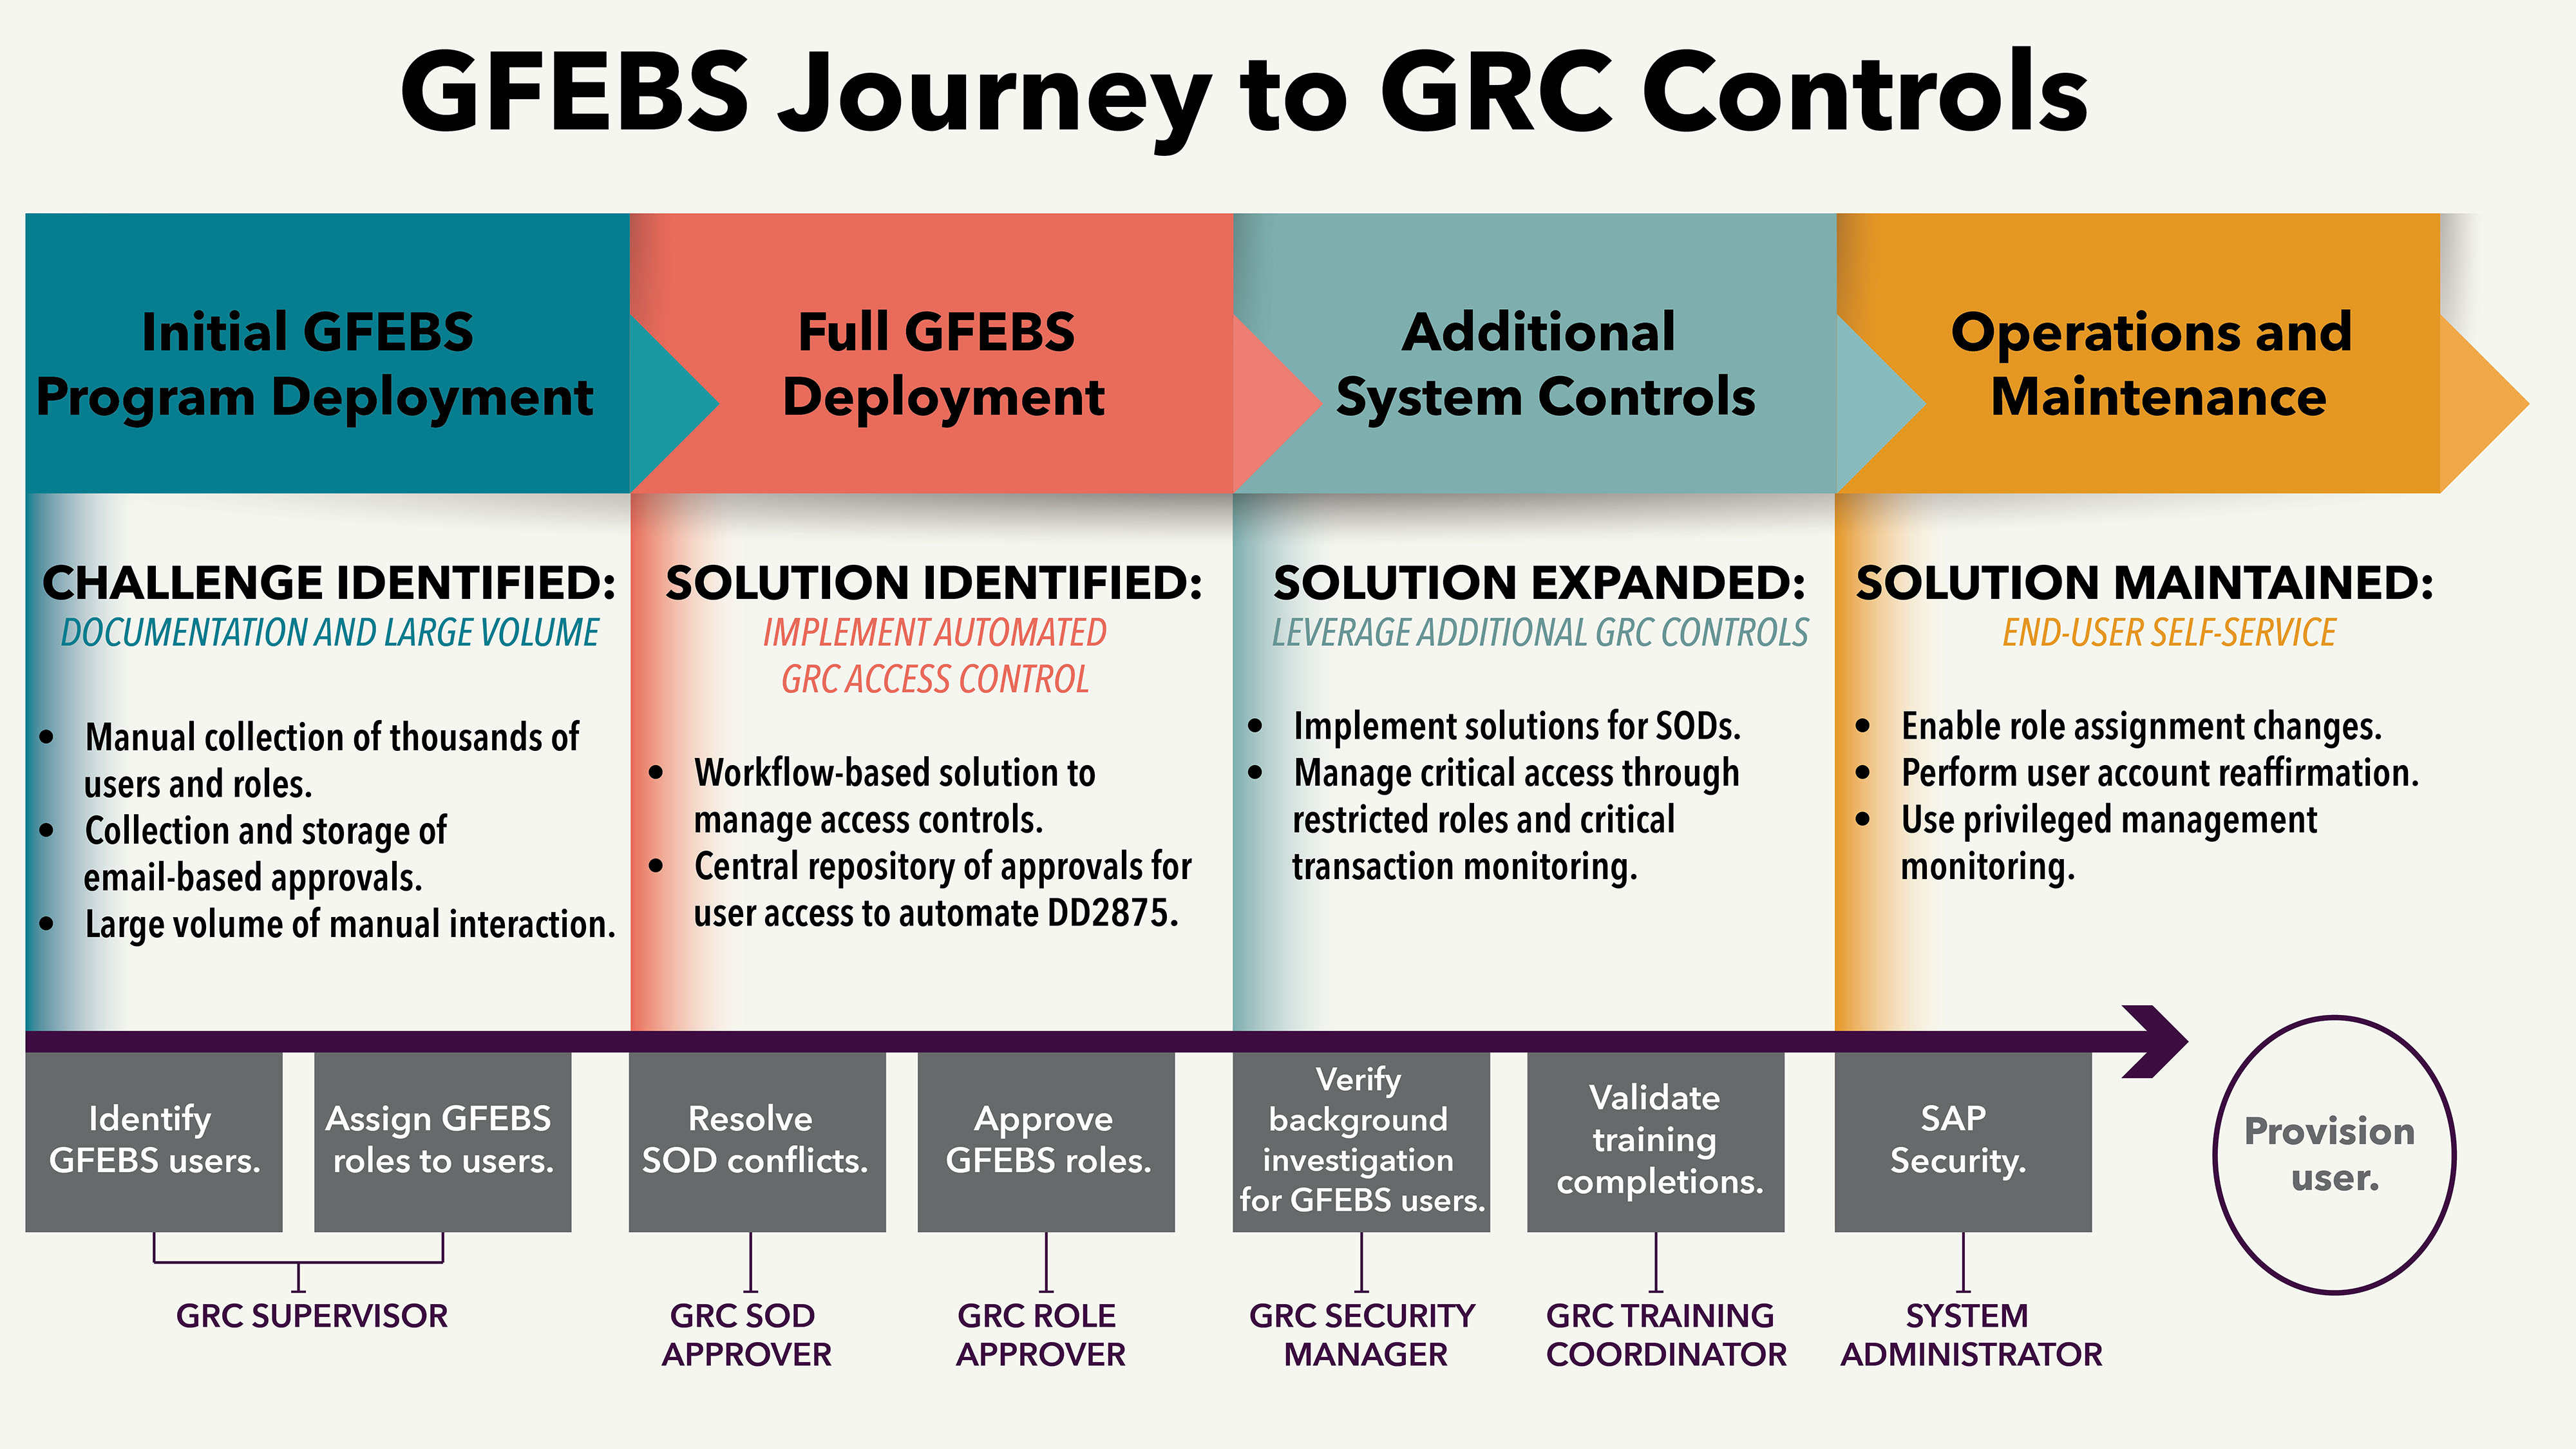 Once the GFEBS PMO identified the challenge it faced—how to streamline and strengthen a labor-intensive process for managing user access—it developed and matured a process that provisions GFEBS users while still maintaining system security.